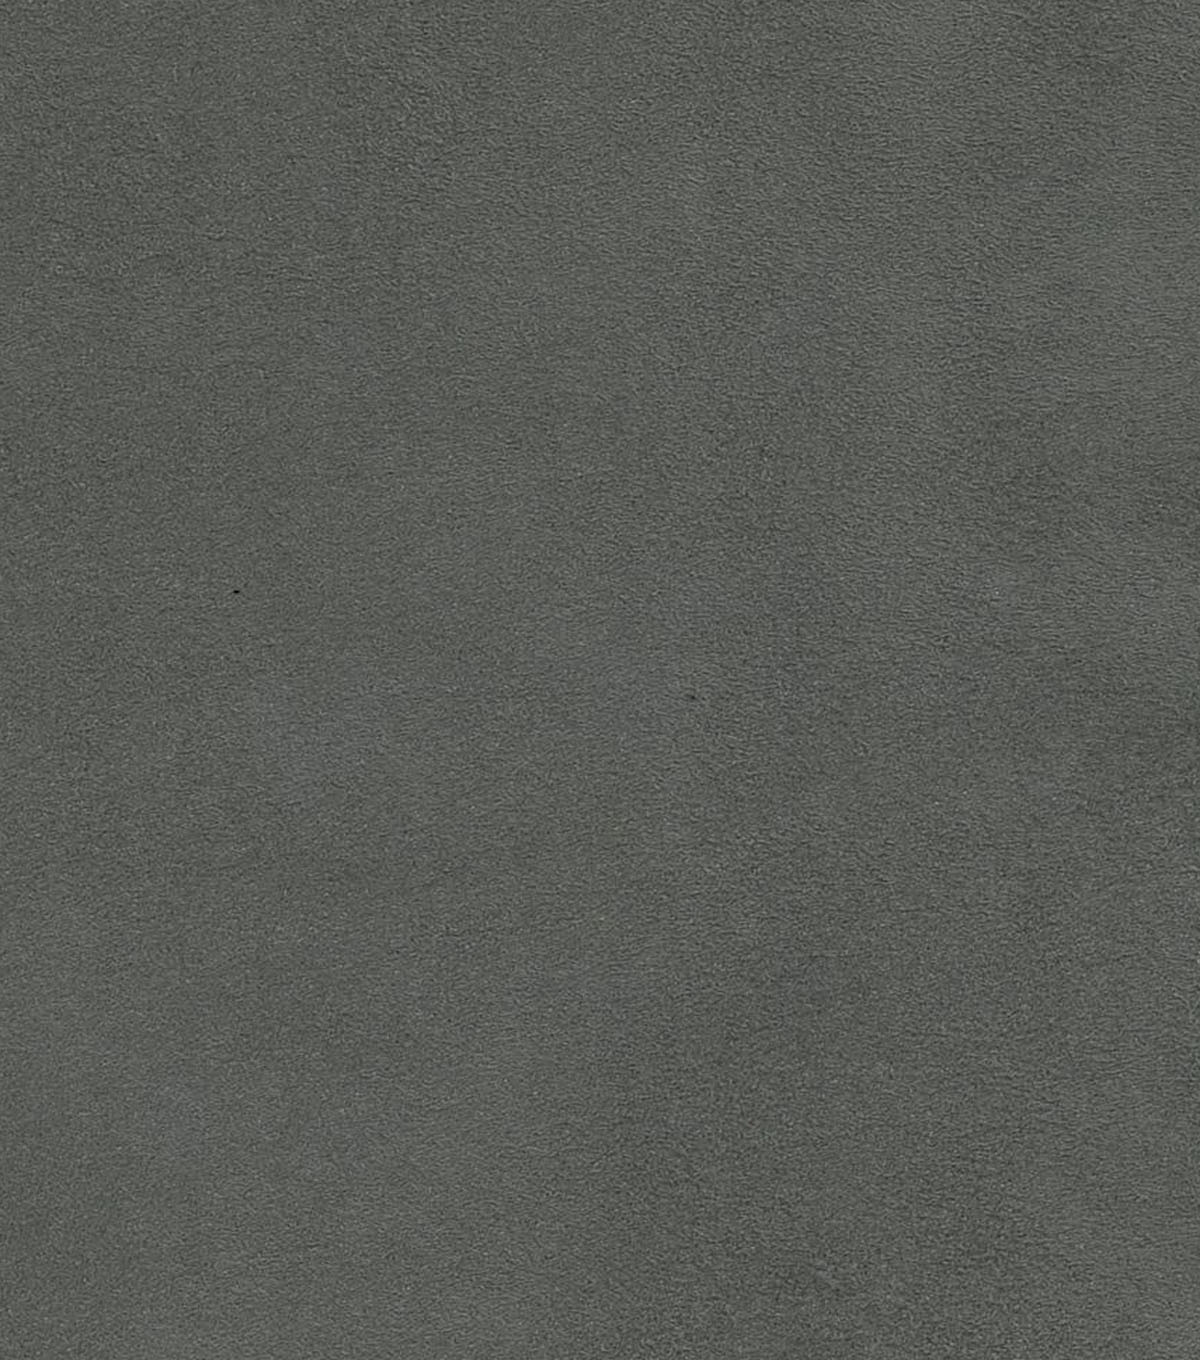 Signature Series Multi-Purpose Faux Suede Decor Fabric 54\u0022-Dark Gray